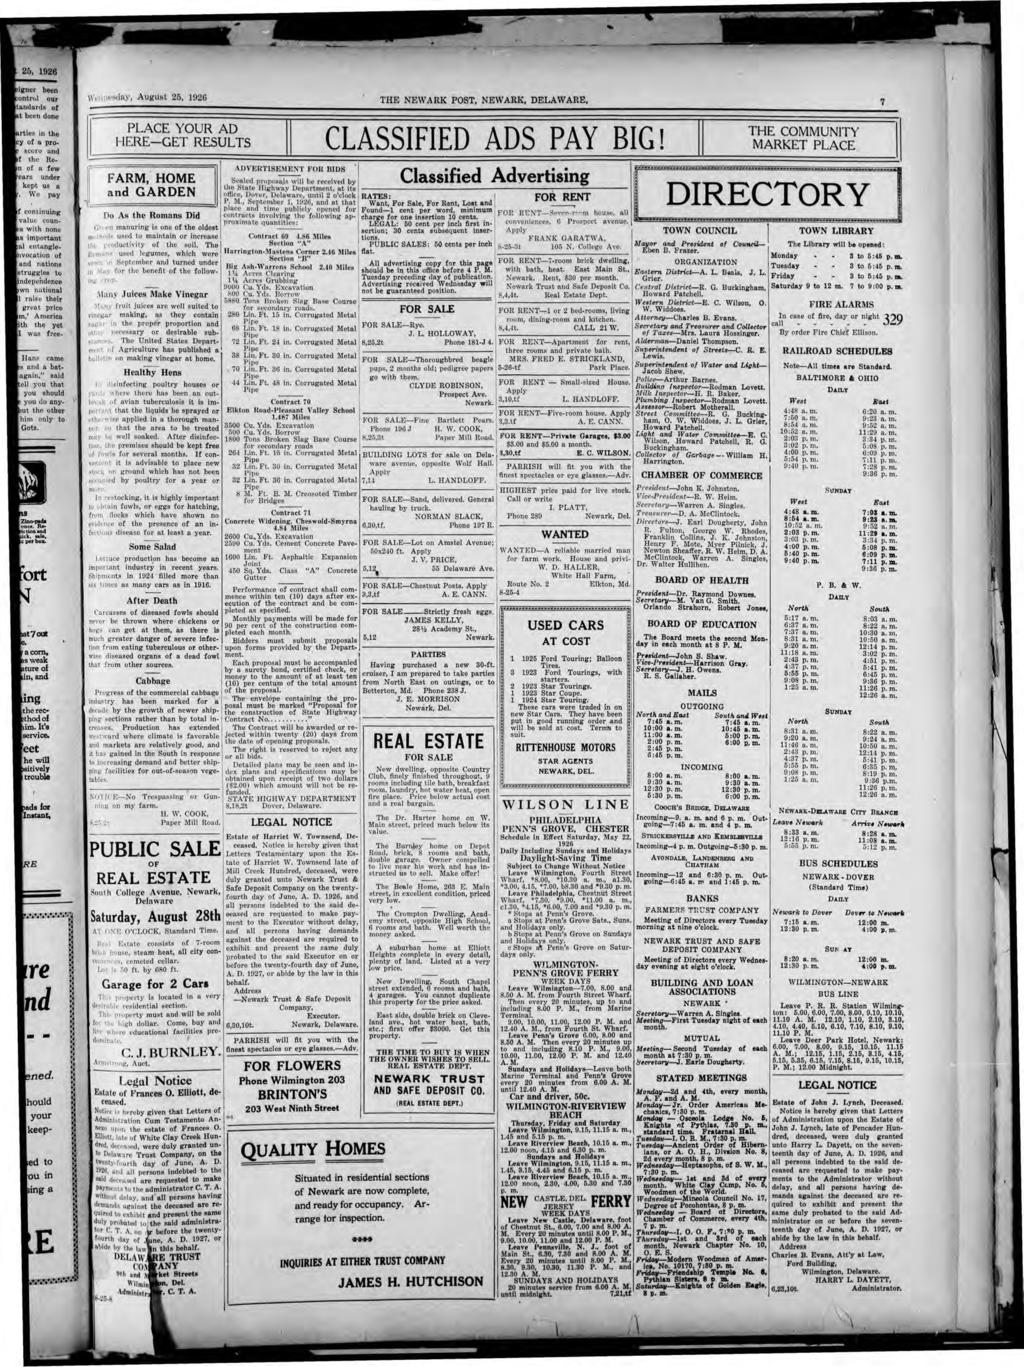 to \\'t c!n sc1ay, Augu t 25, 1926 THE NEW A RK POST, NEW ARK, DELAWARE. 7 PLACE YOUR AD HERE-GET RESULTS CLASSFED ADS PAY BG!